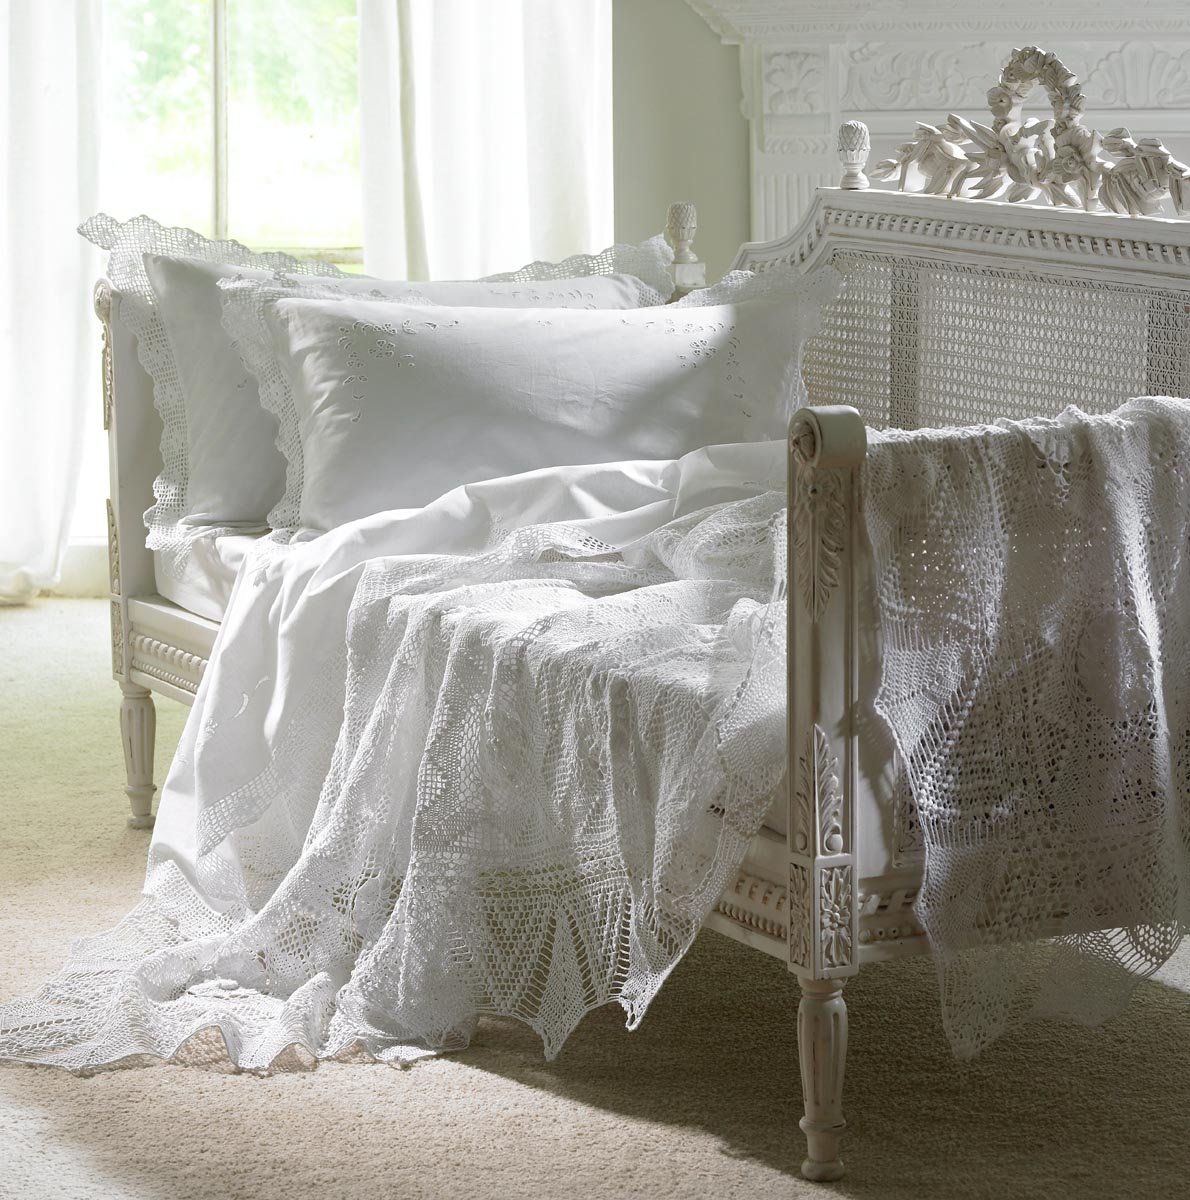 American Traditions Bedding furthermore Bogolan also Collection also Inspired Friday White Romance in addition Flowers And Fashion. on oscar de la renta bedspread